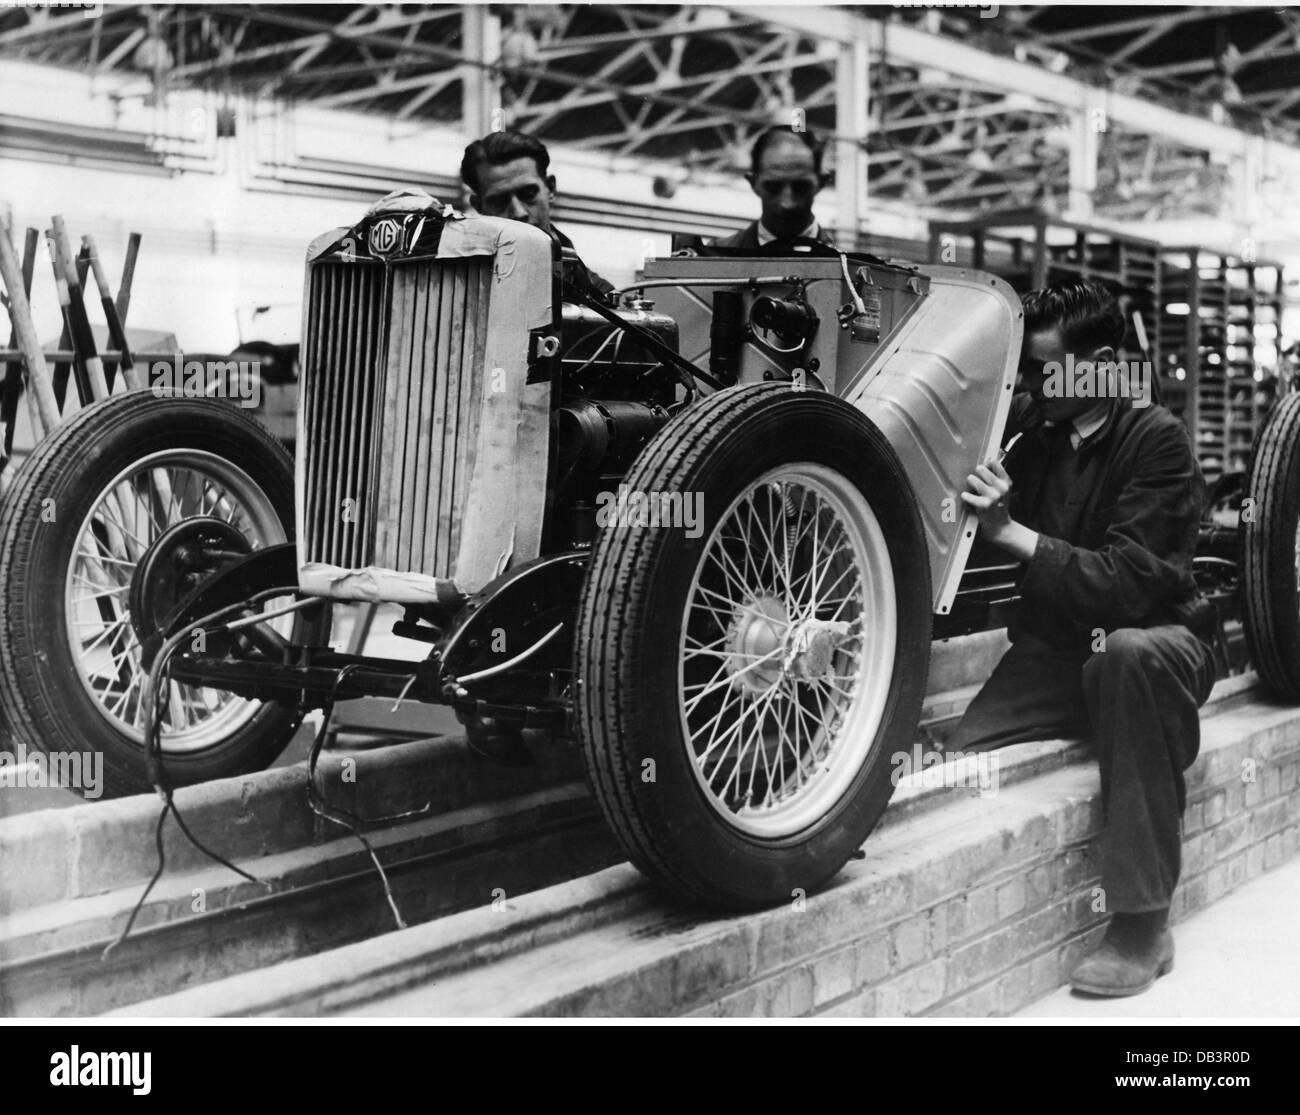 Name Of First Car In The World | Carsjp.com